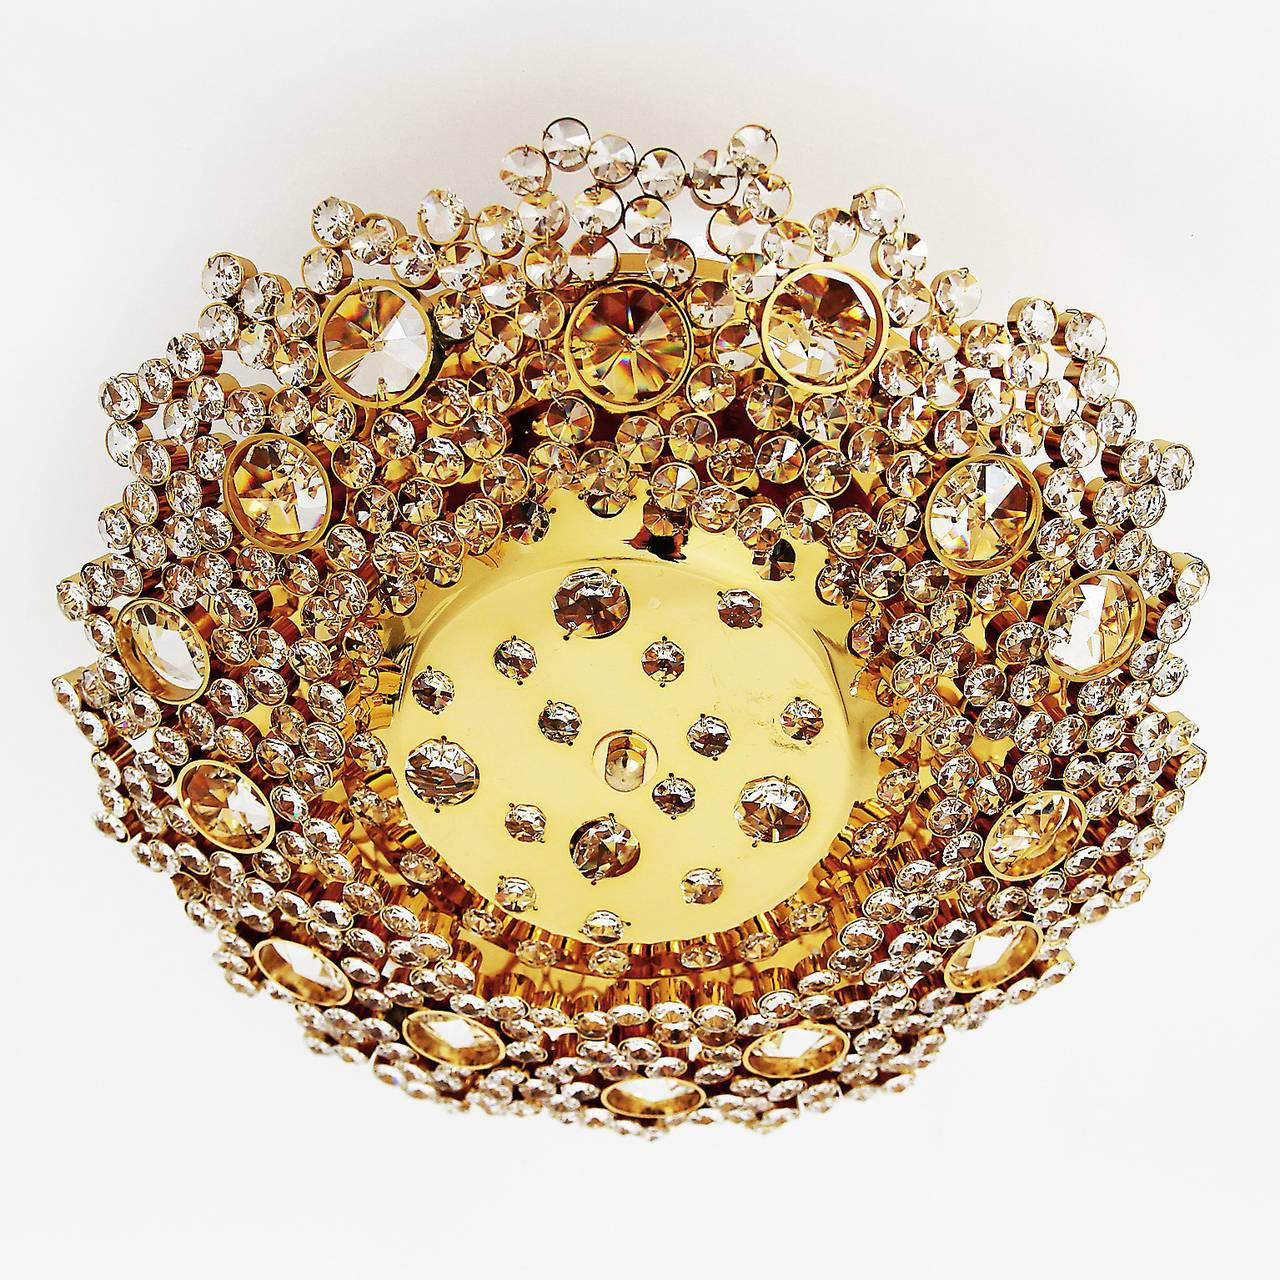 A very beautiful and high quality gold plated brass flush mount by Palwa (Palme & Walter), Germany, manufactured in Mid-Century, circa 1960. A gilt frame is made of hundreds of gilt brass rings which hold cut glass crystals in different sizes. A